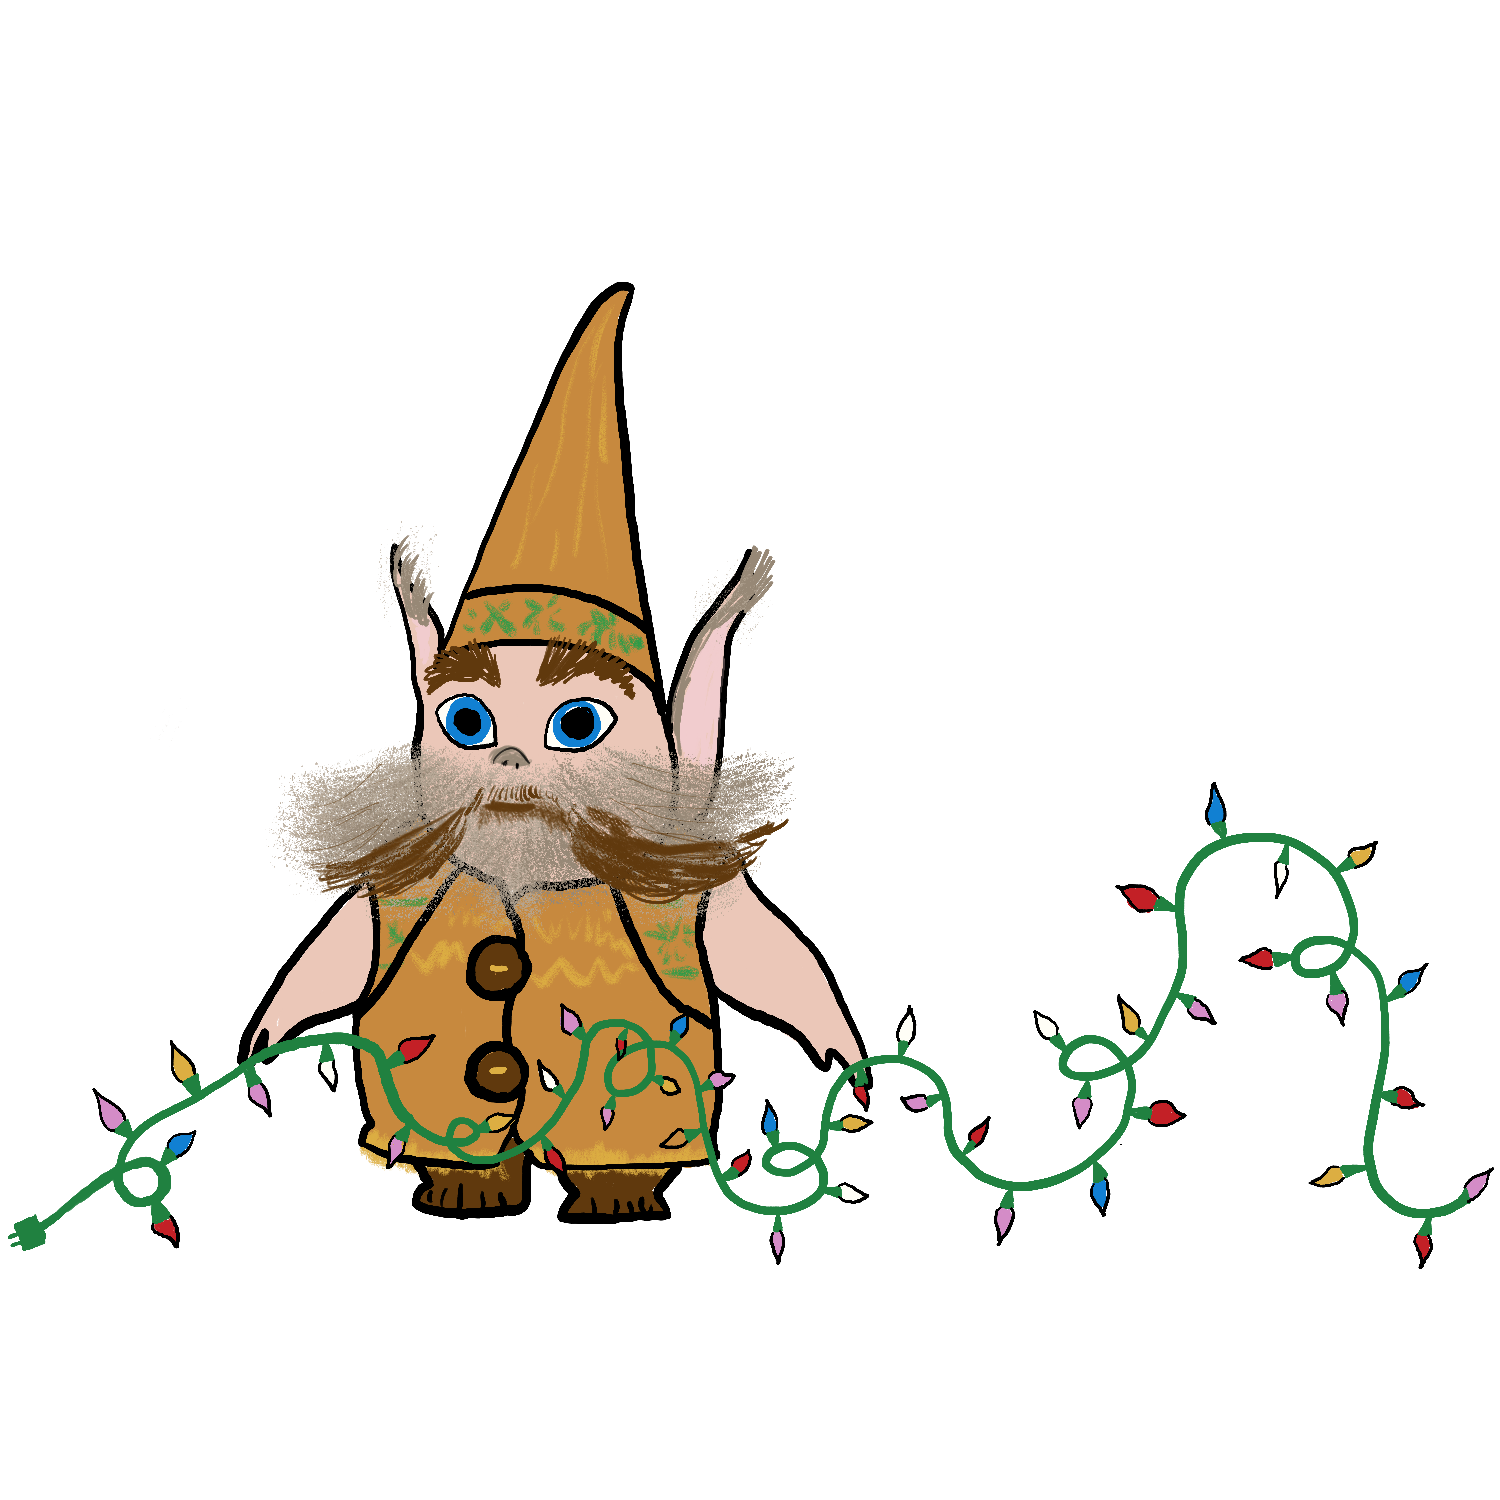 Bjorn the Elf from The Christmas Chronicles Movie Illustration by Erika Firm for Netflix